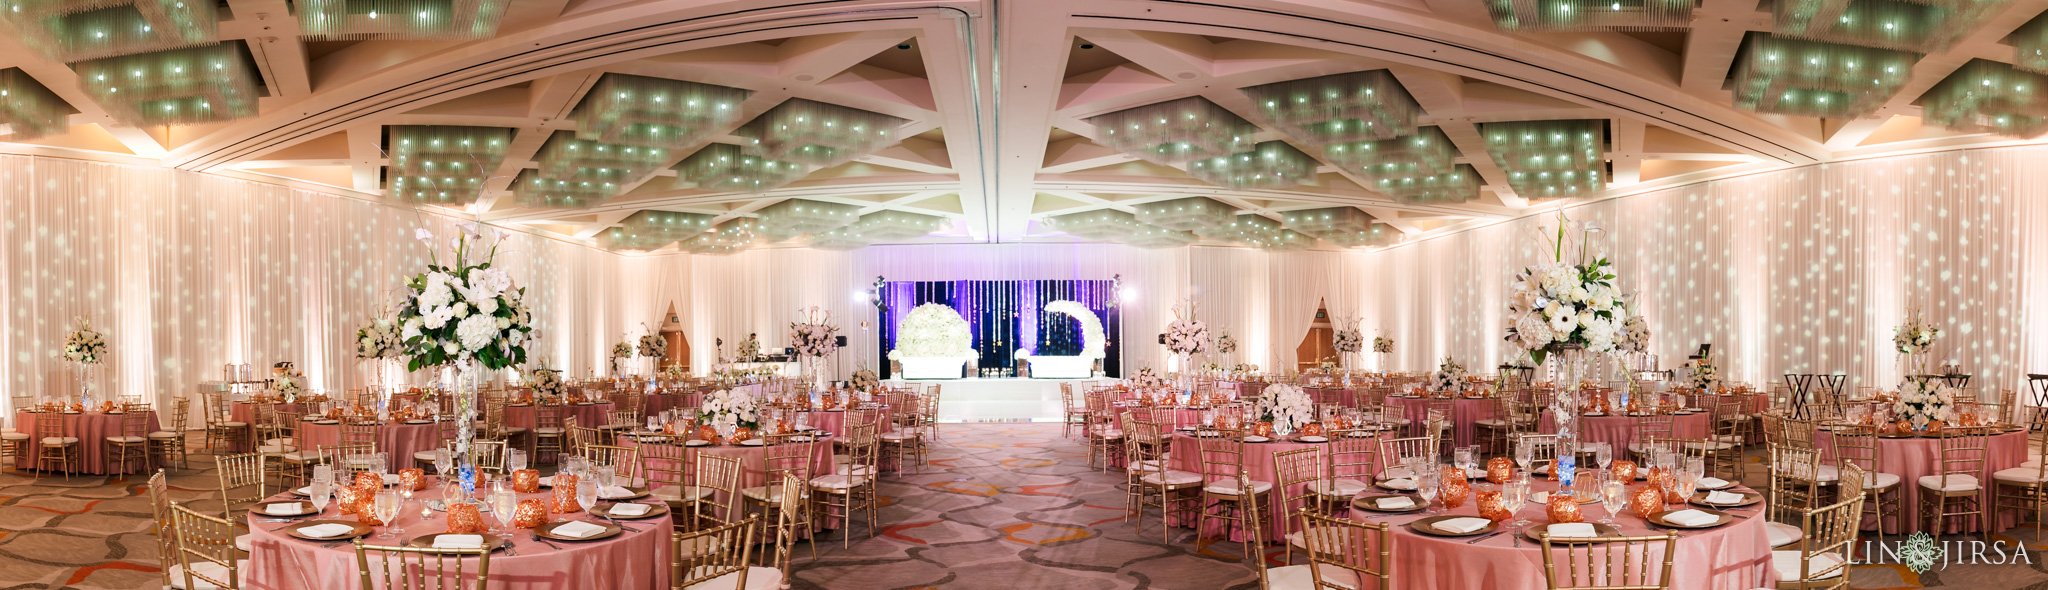 07 Hotel Irvine Joint Indian Reception Wedding Photography